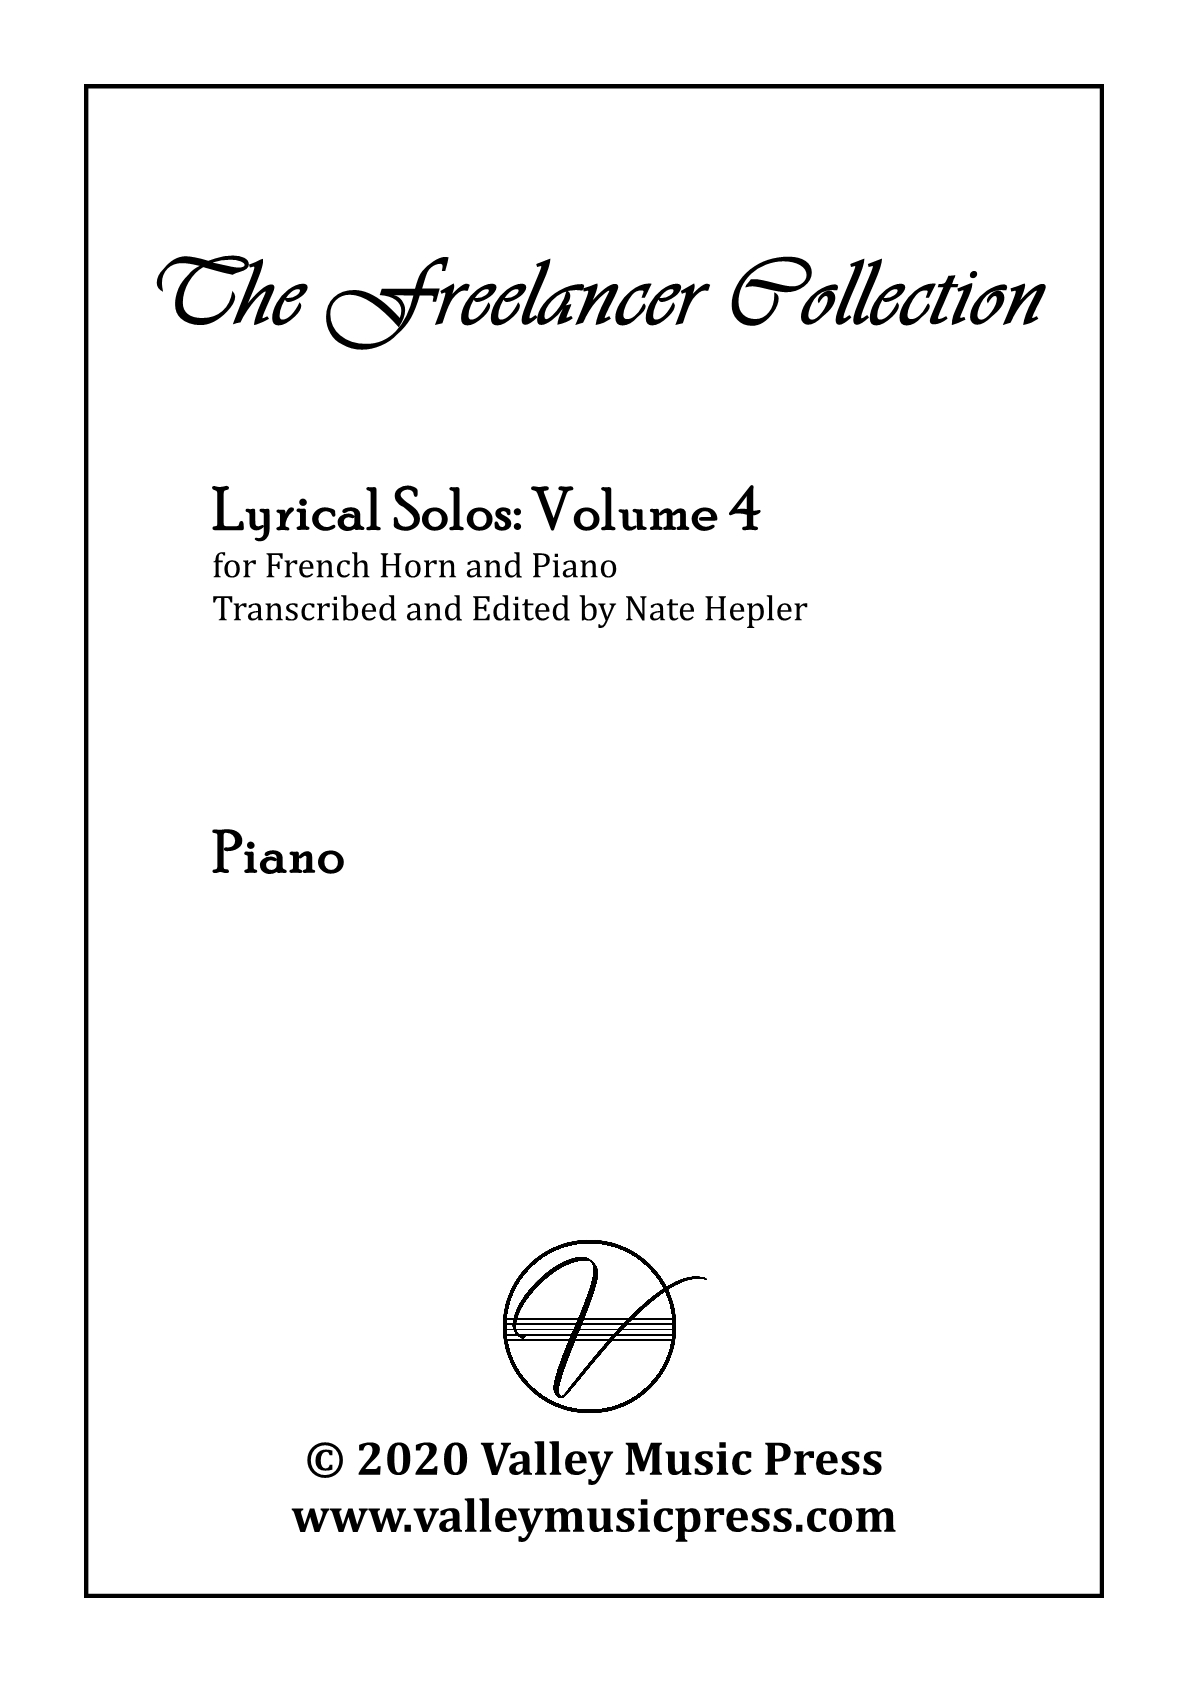 Hepler - Freelancer Collection Lyrical Solos Vol 4 (Hrn & Piano)